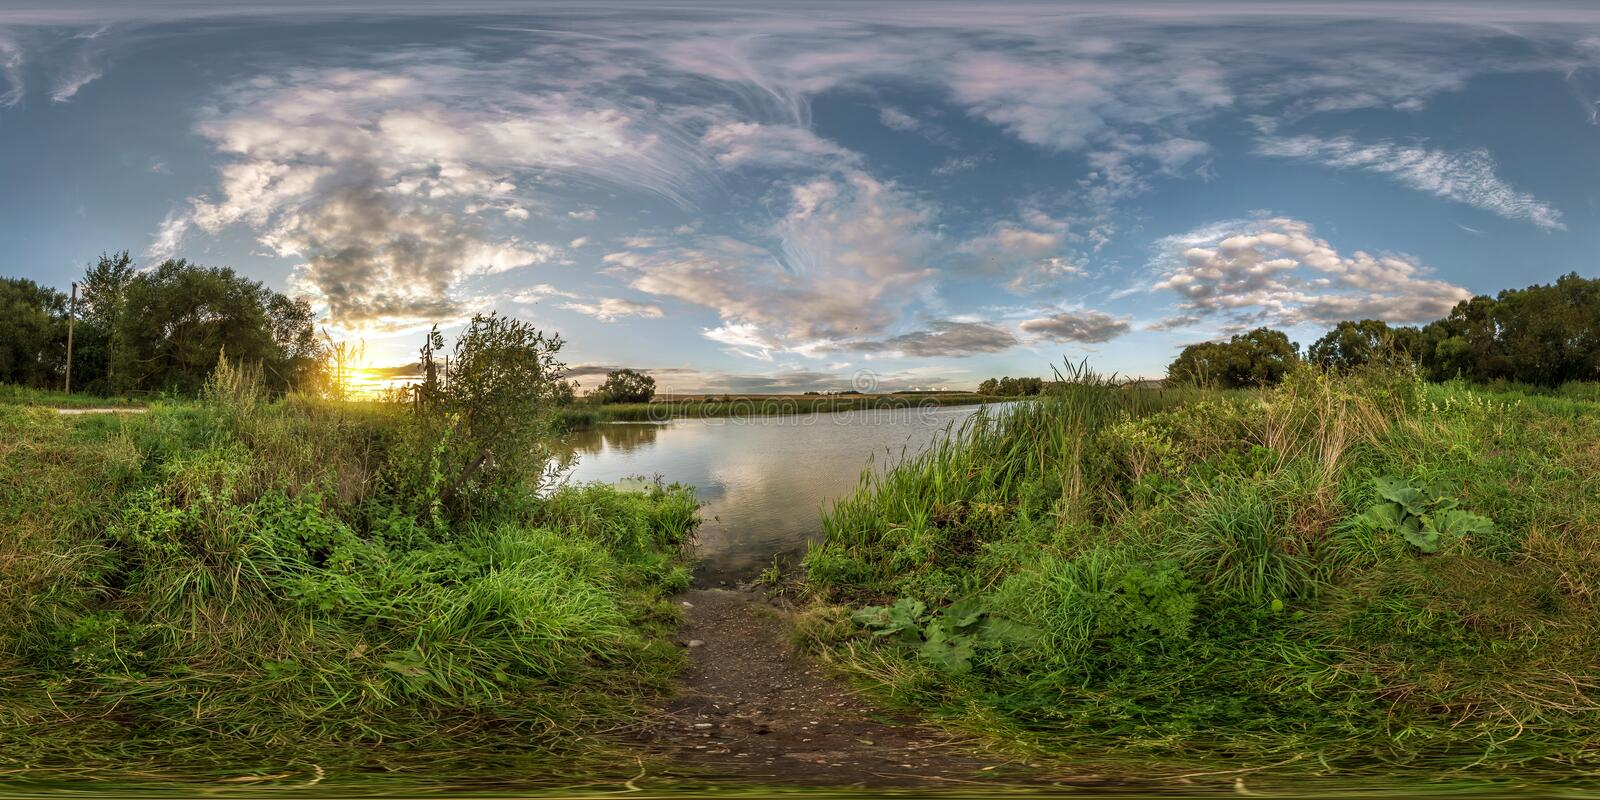 Full seamless spherical panorama 360 by 180 angle view on the shore of small lake in sunny summer evening with awesome clouds in royalty free stock image